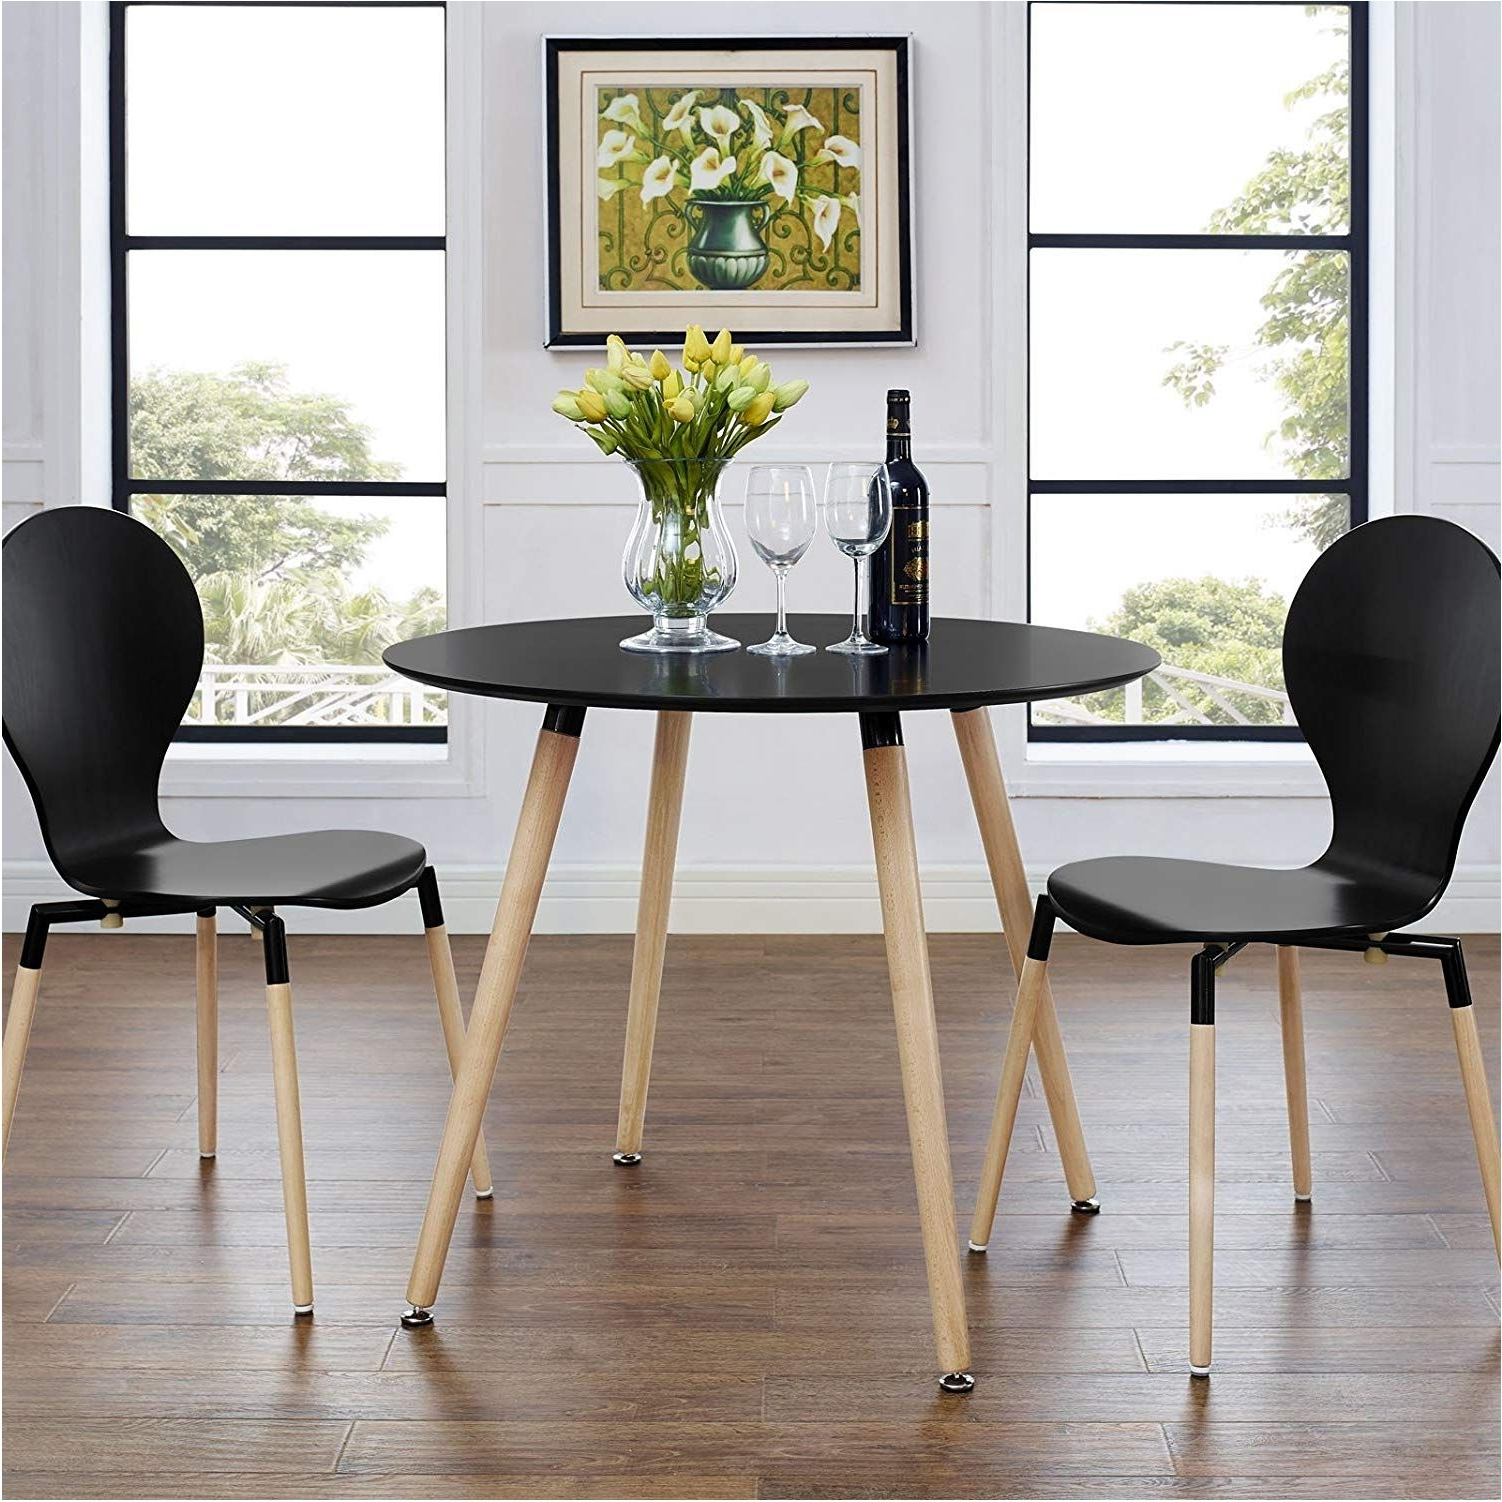 Brilliant Amazon Track Circular Dining Table Black Tables – Circular With Best And Newest Black Circular Dining Tables (View 13 of 25)